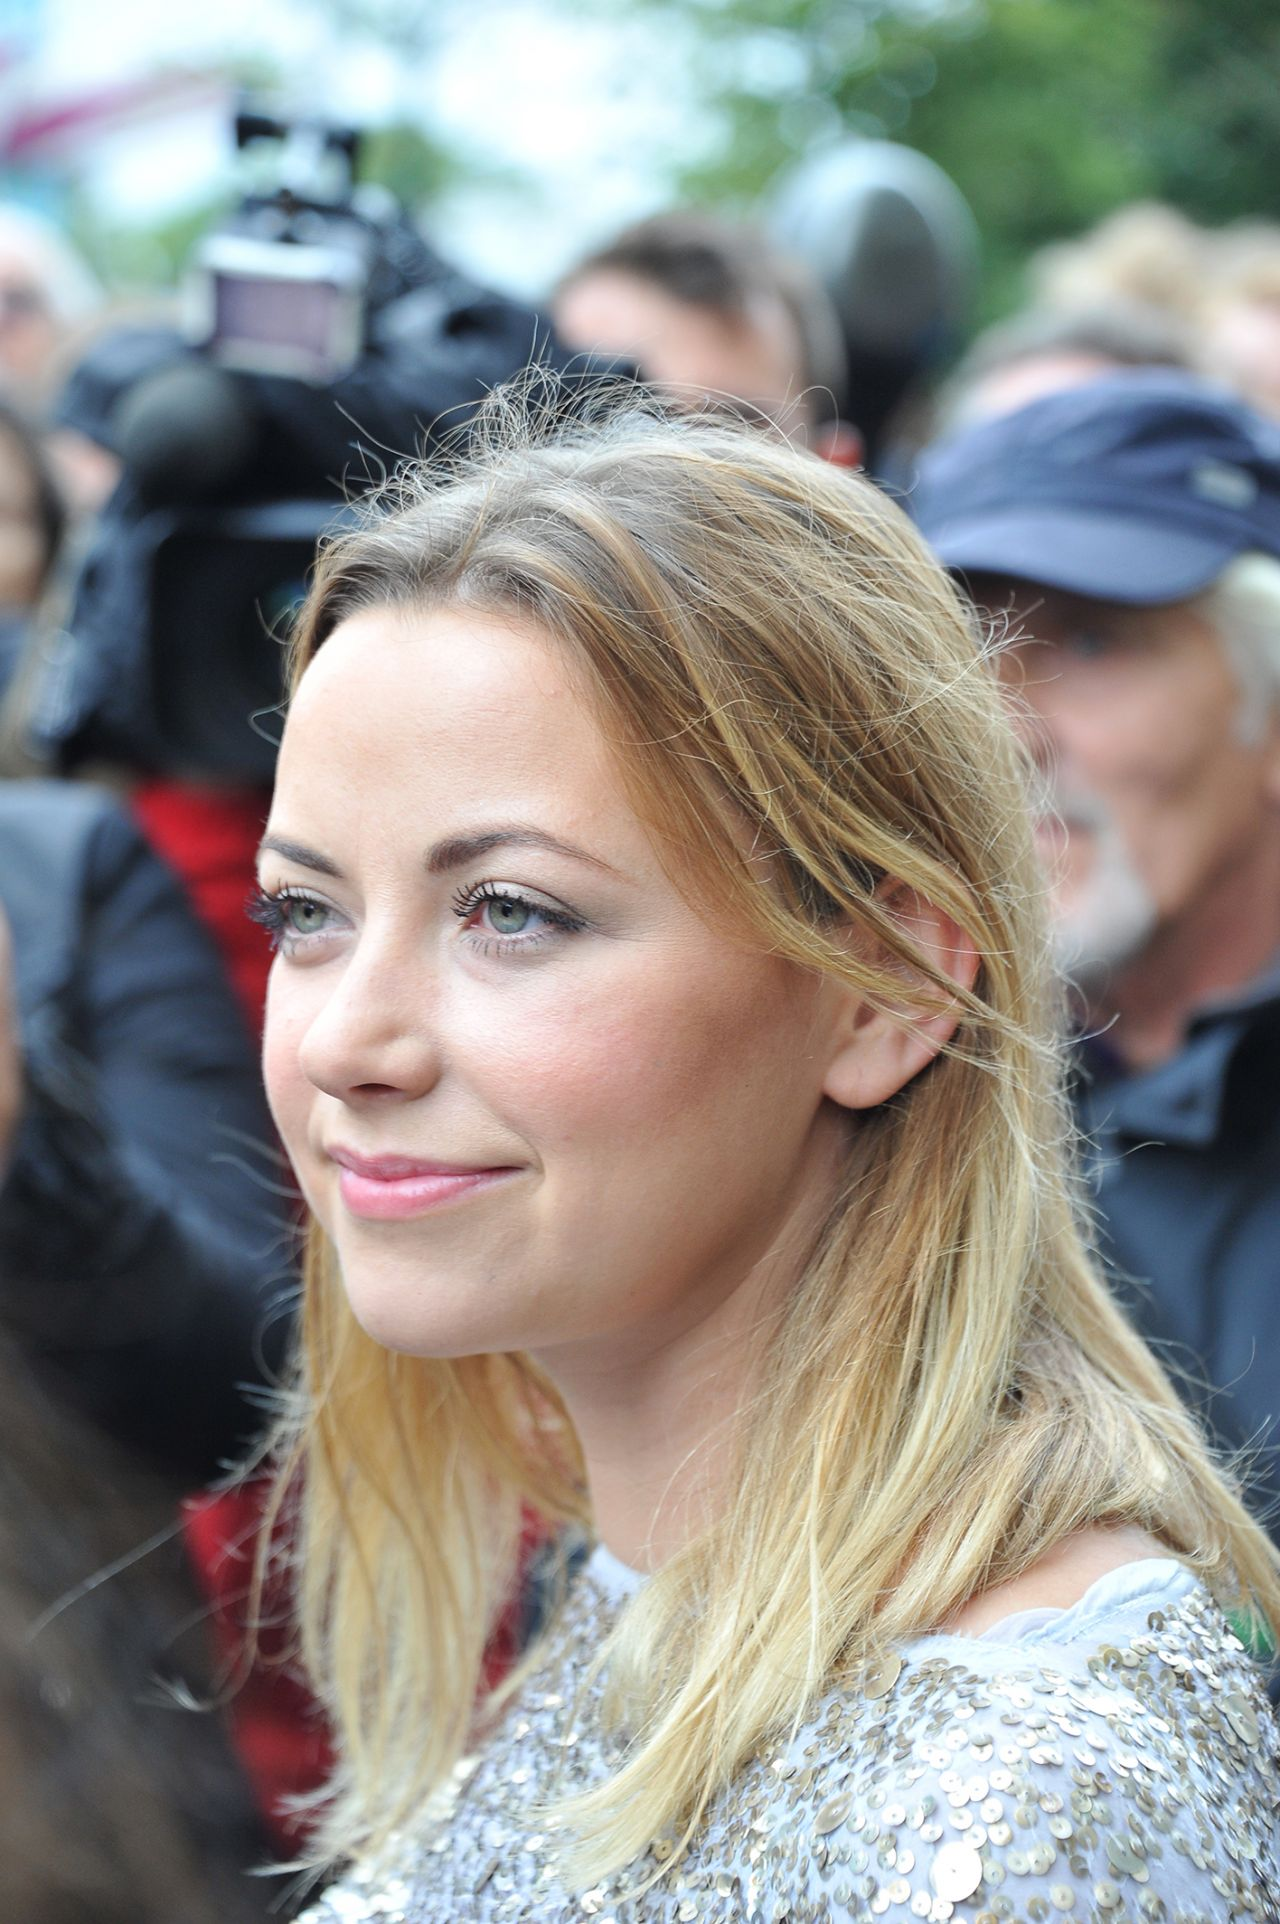 charlotte church - photo #13